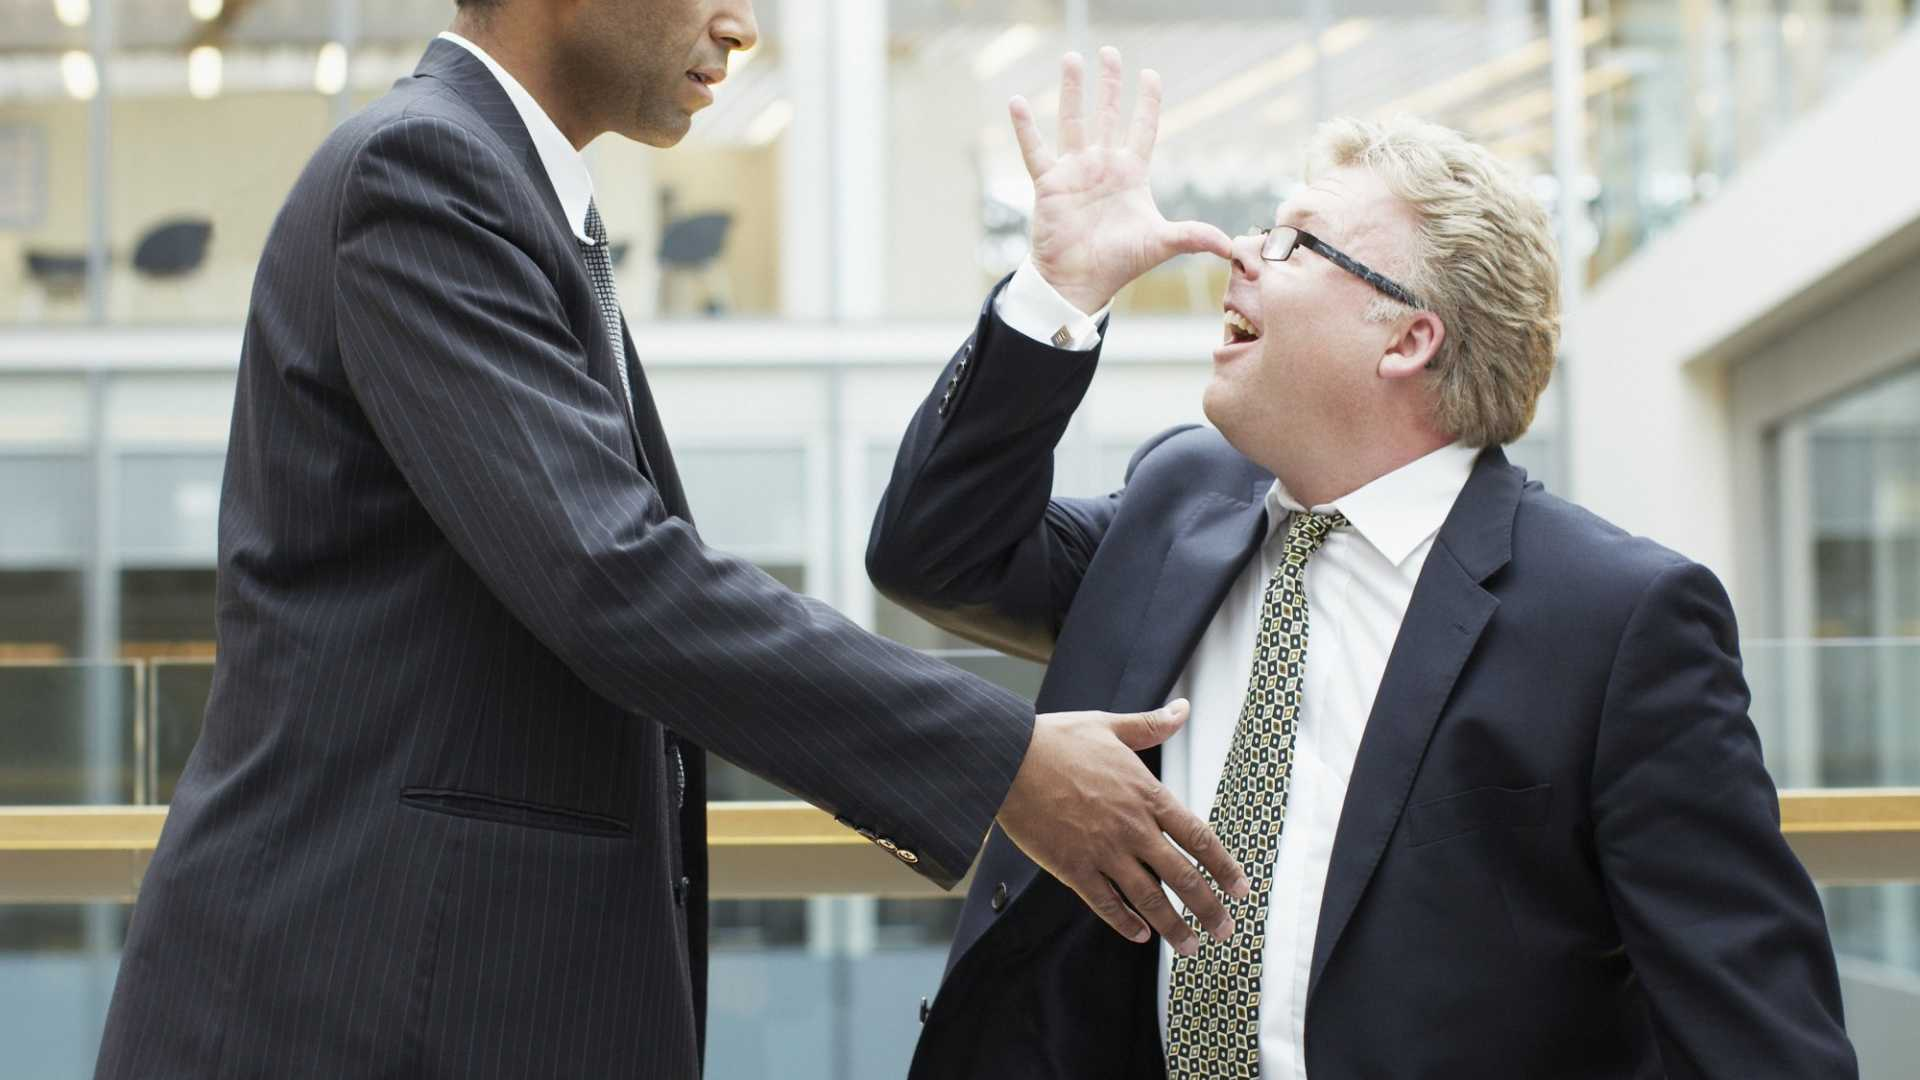 5 Tips for Managing a Negative Employee